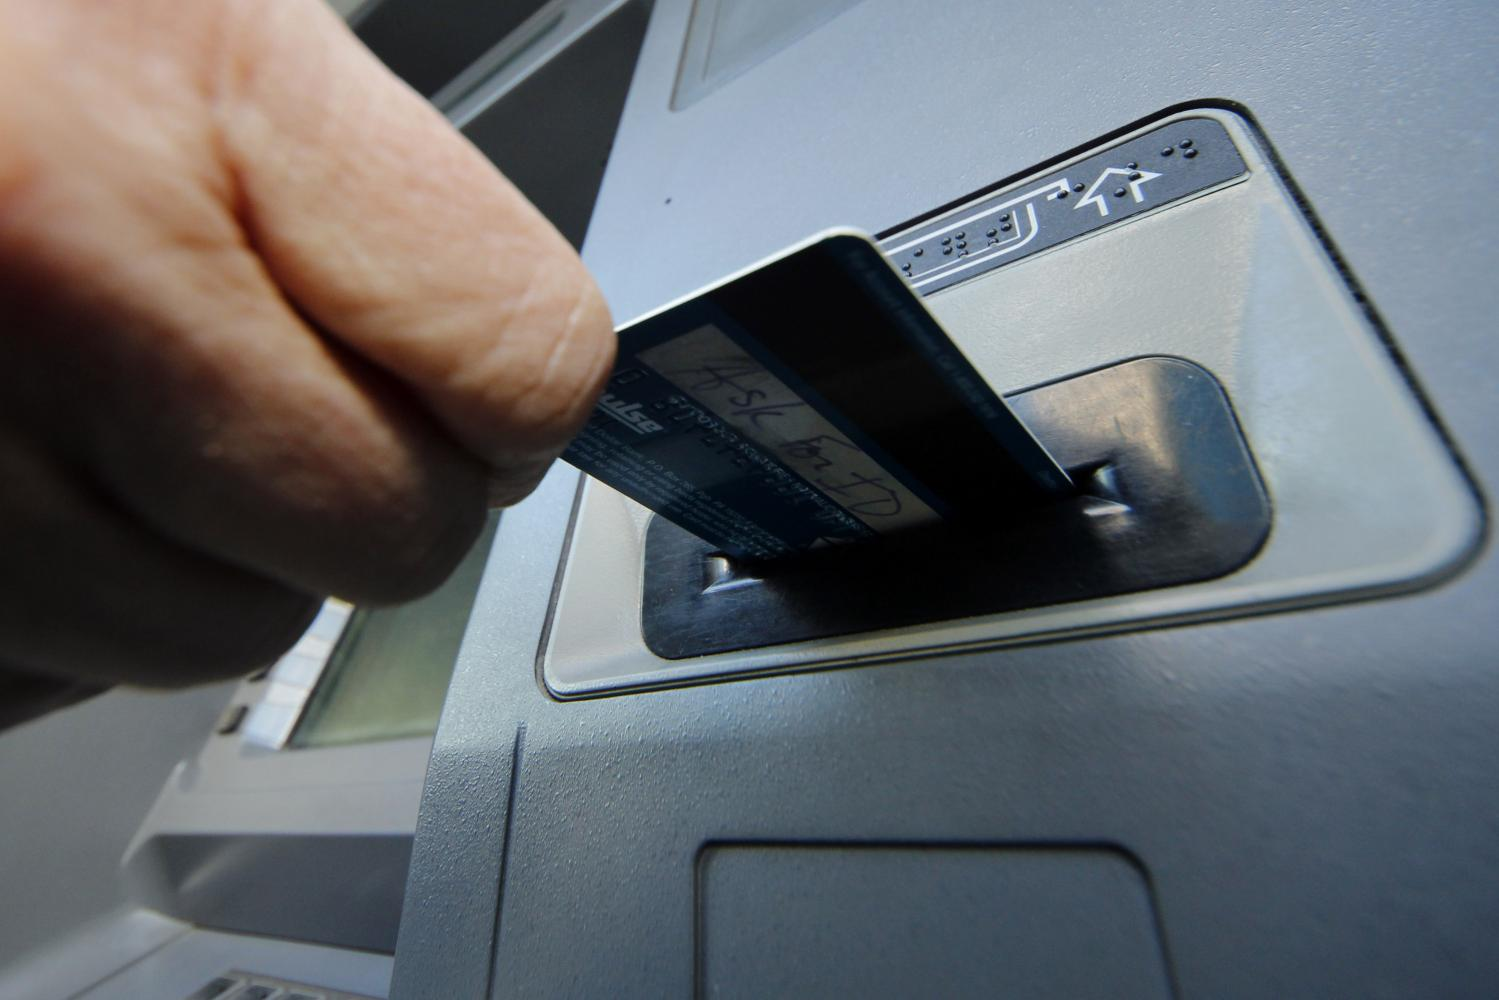 Central bank pushes chip-based cash cards